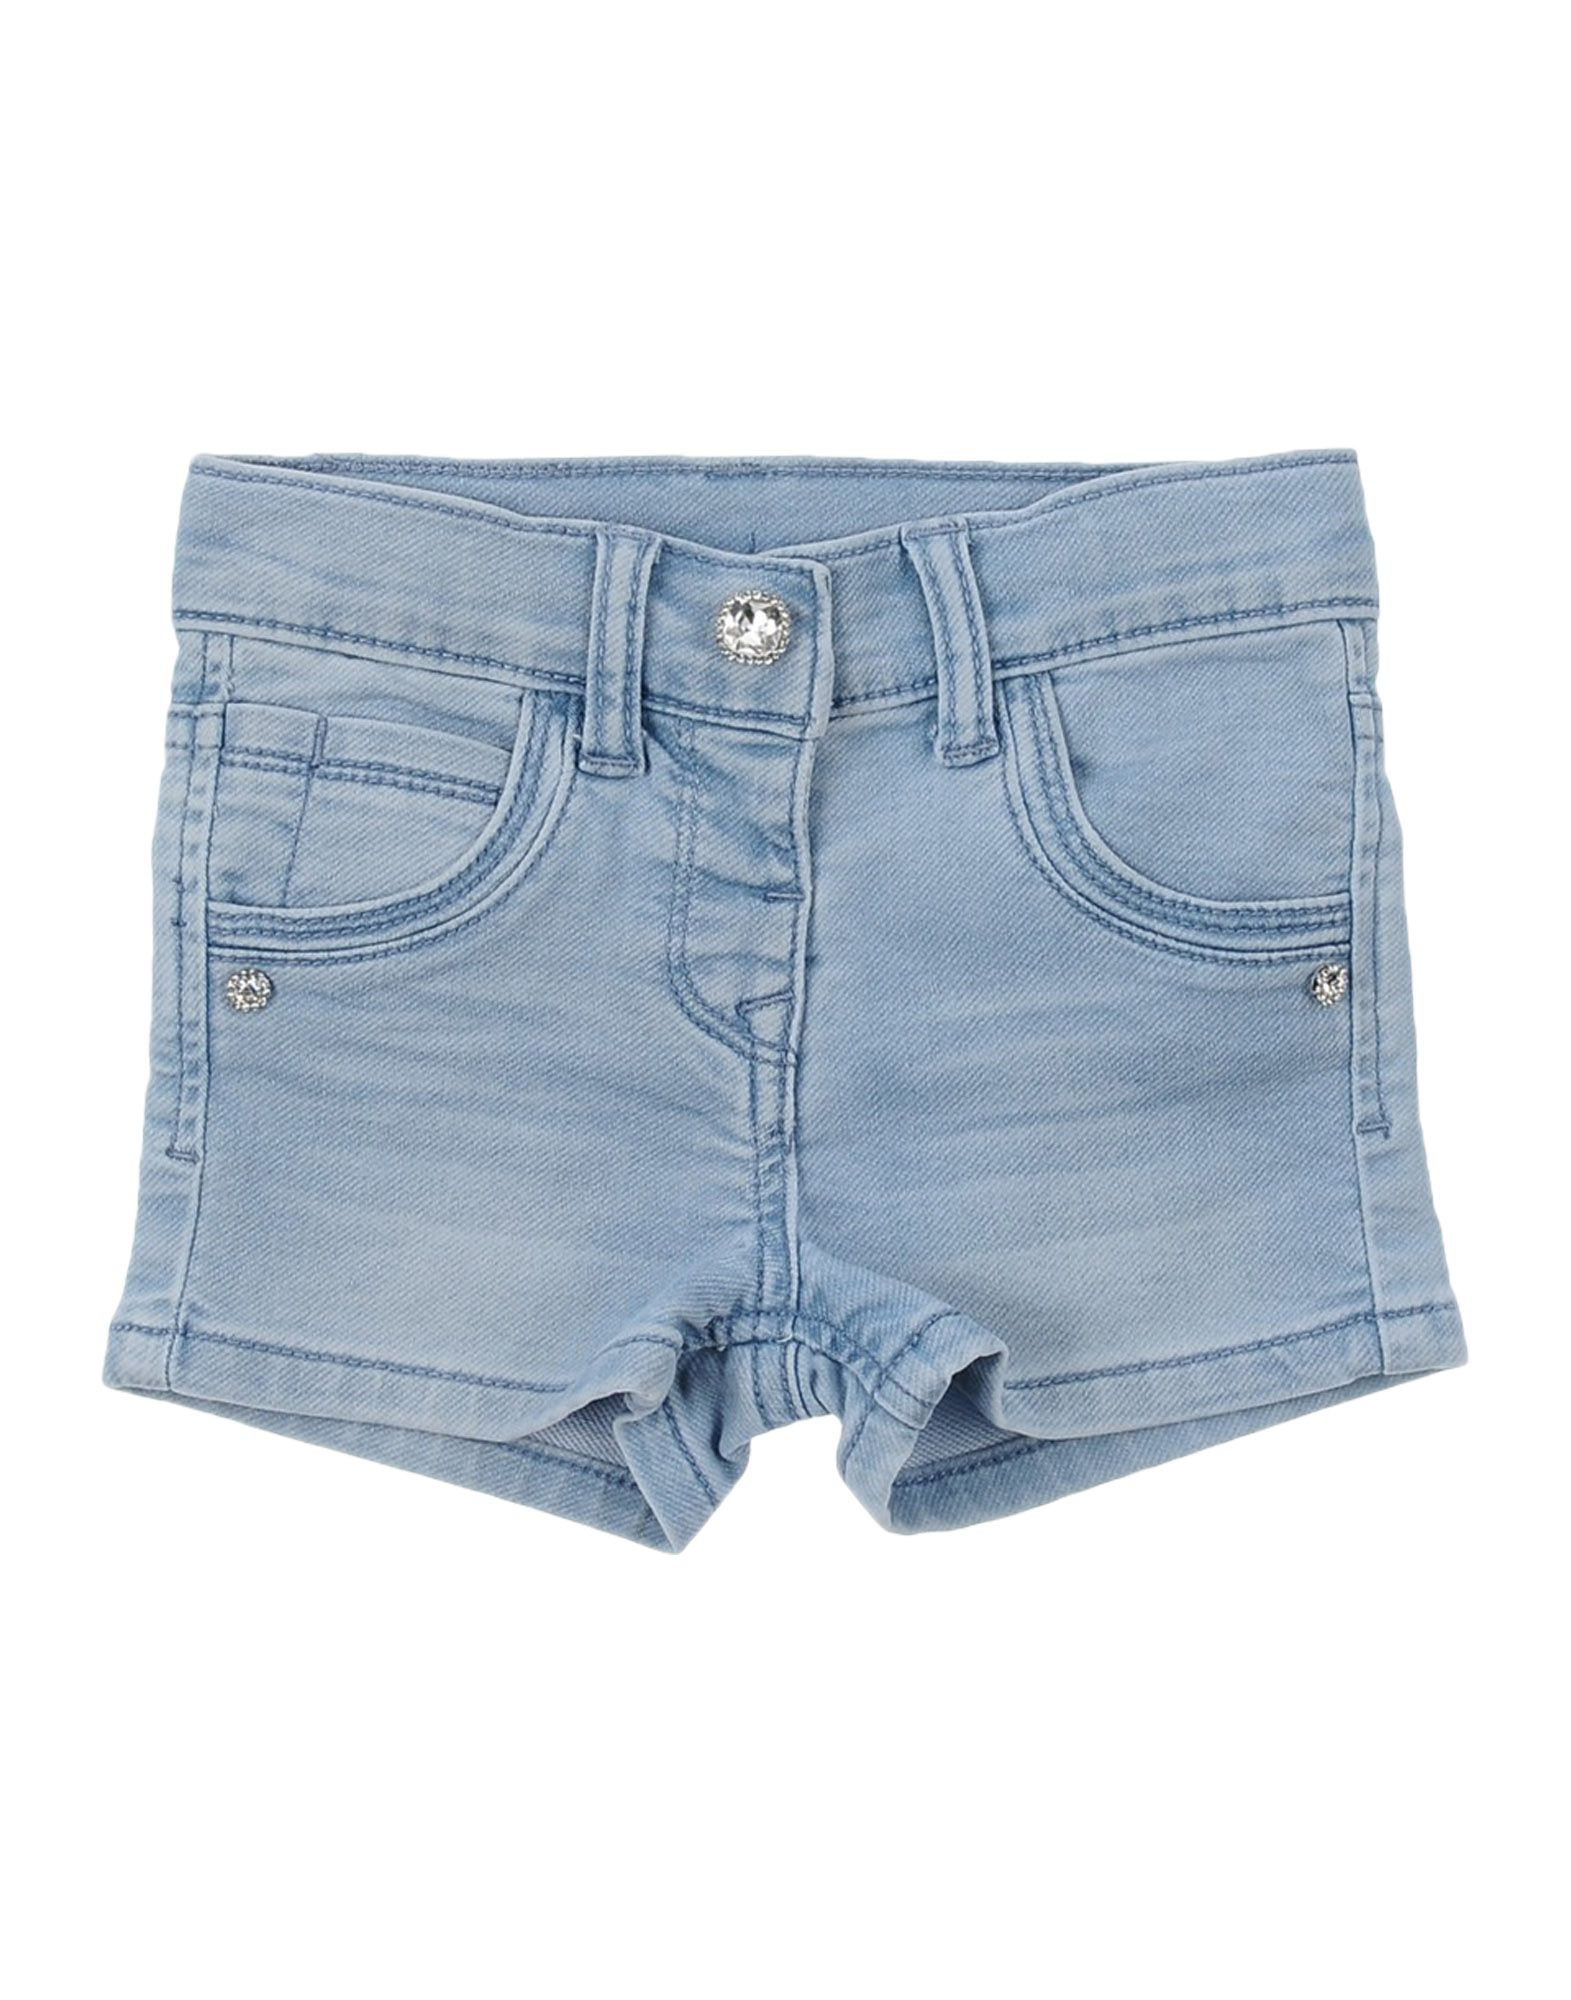 MONNALISA BEBE Denim shorts